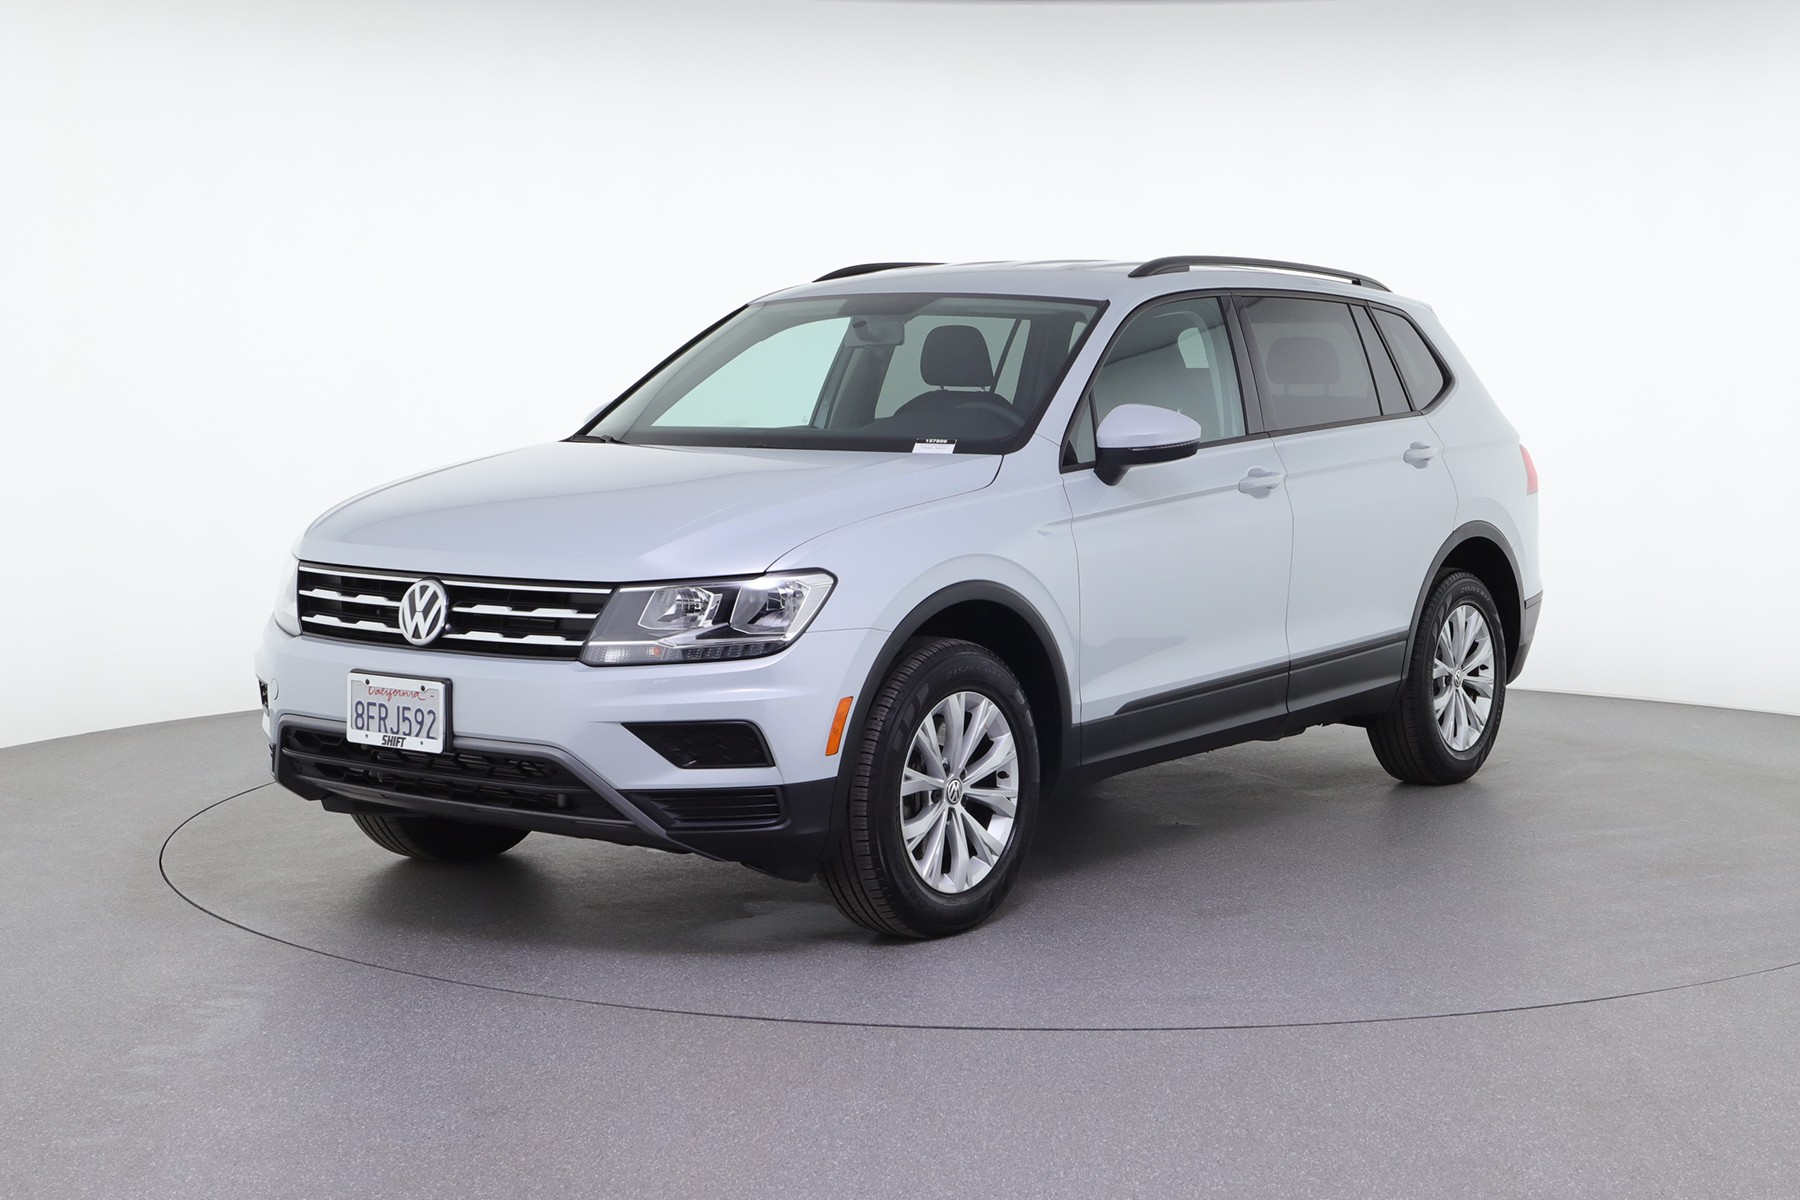 The Best Economical SUV for Towing